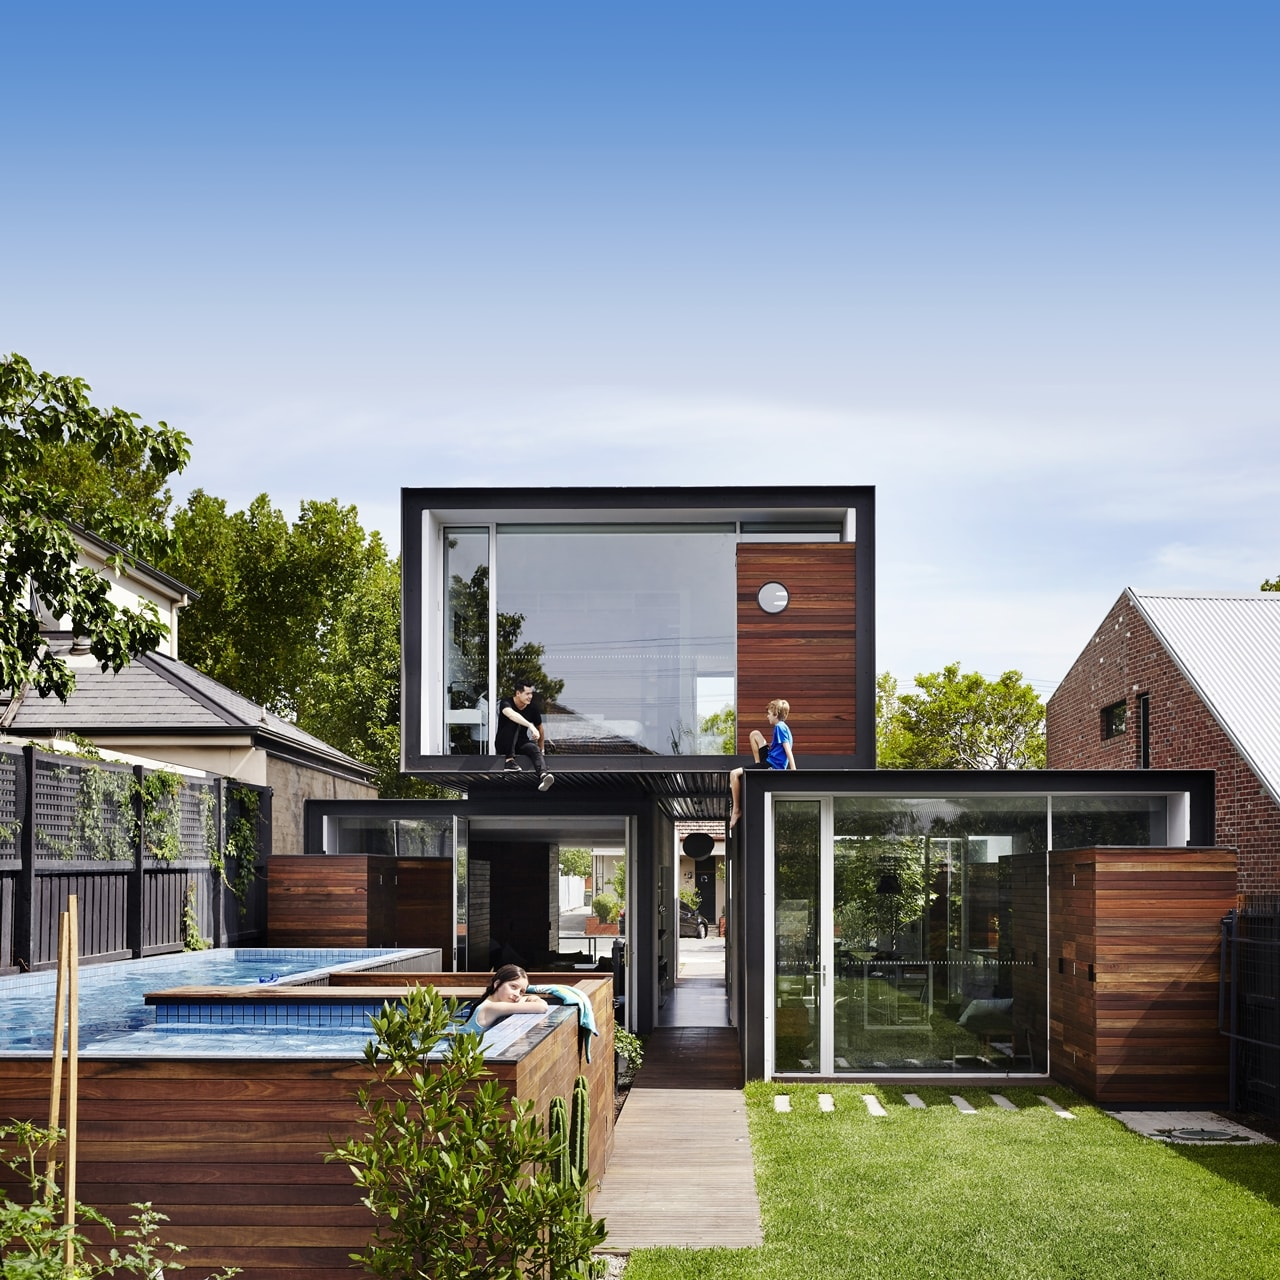 Top 50 Modern House Designs Ever Built: Open House Design: Contemporary Home Connected To The